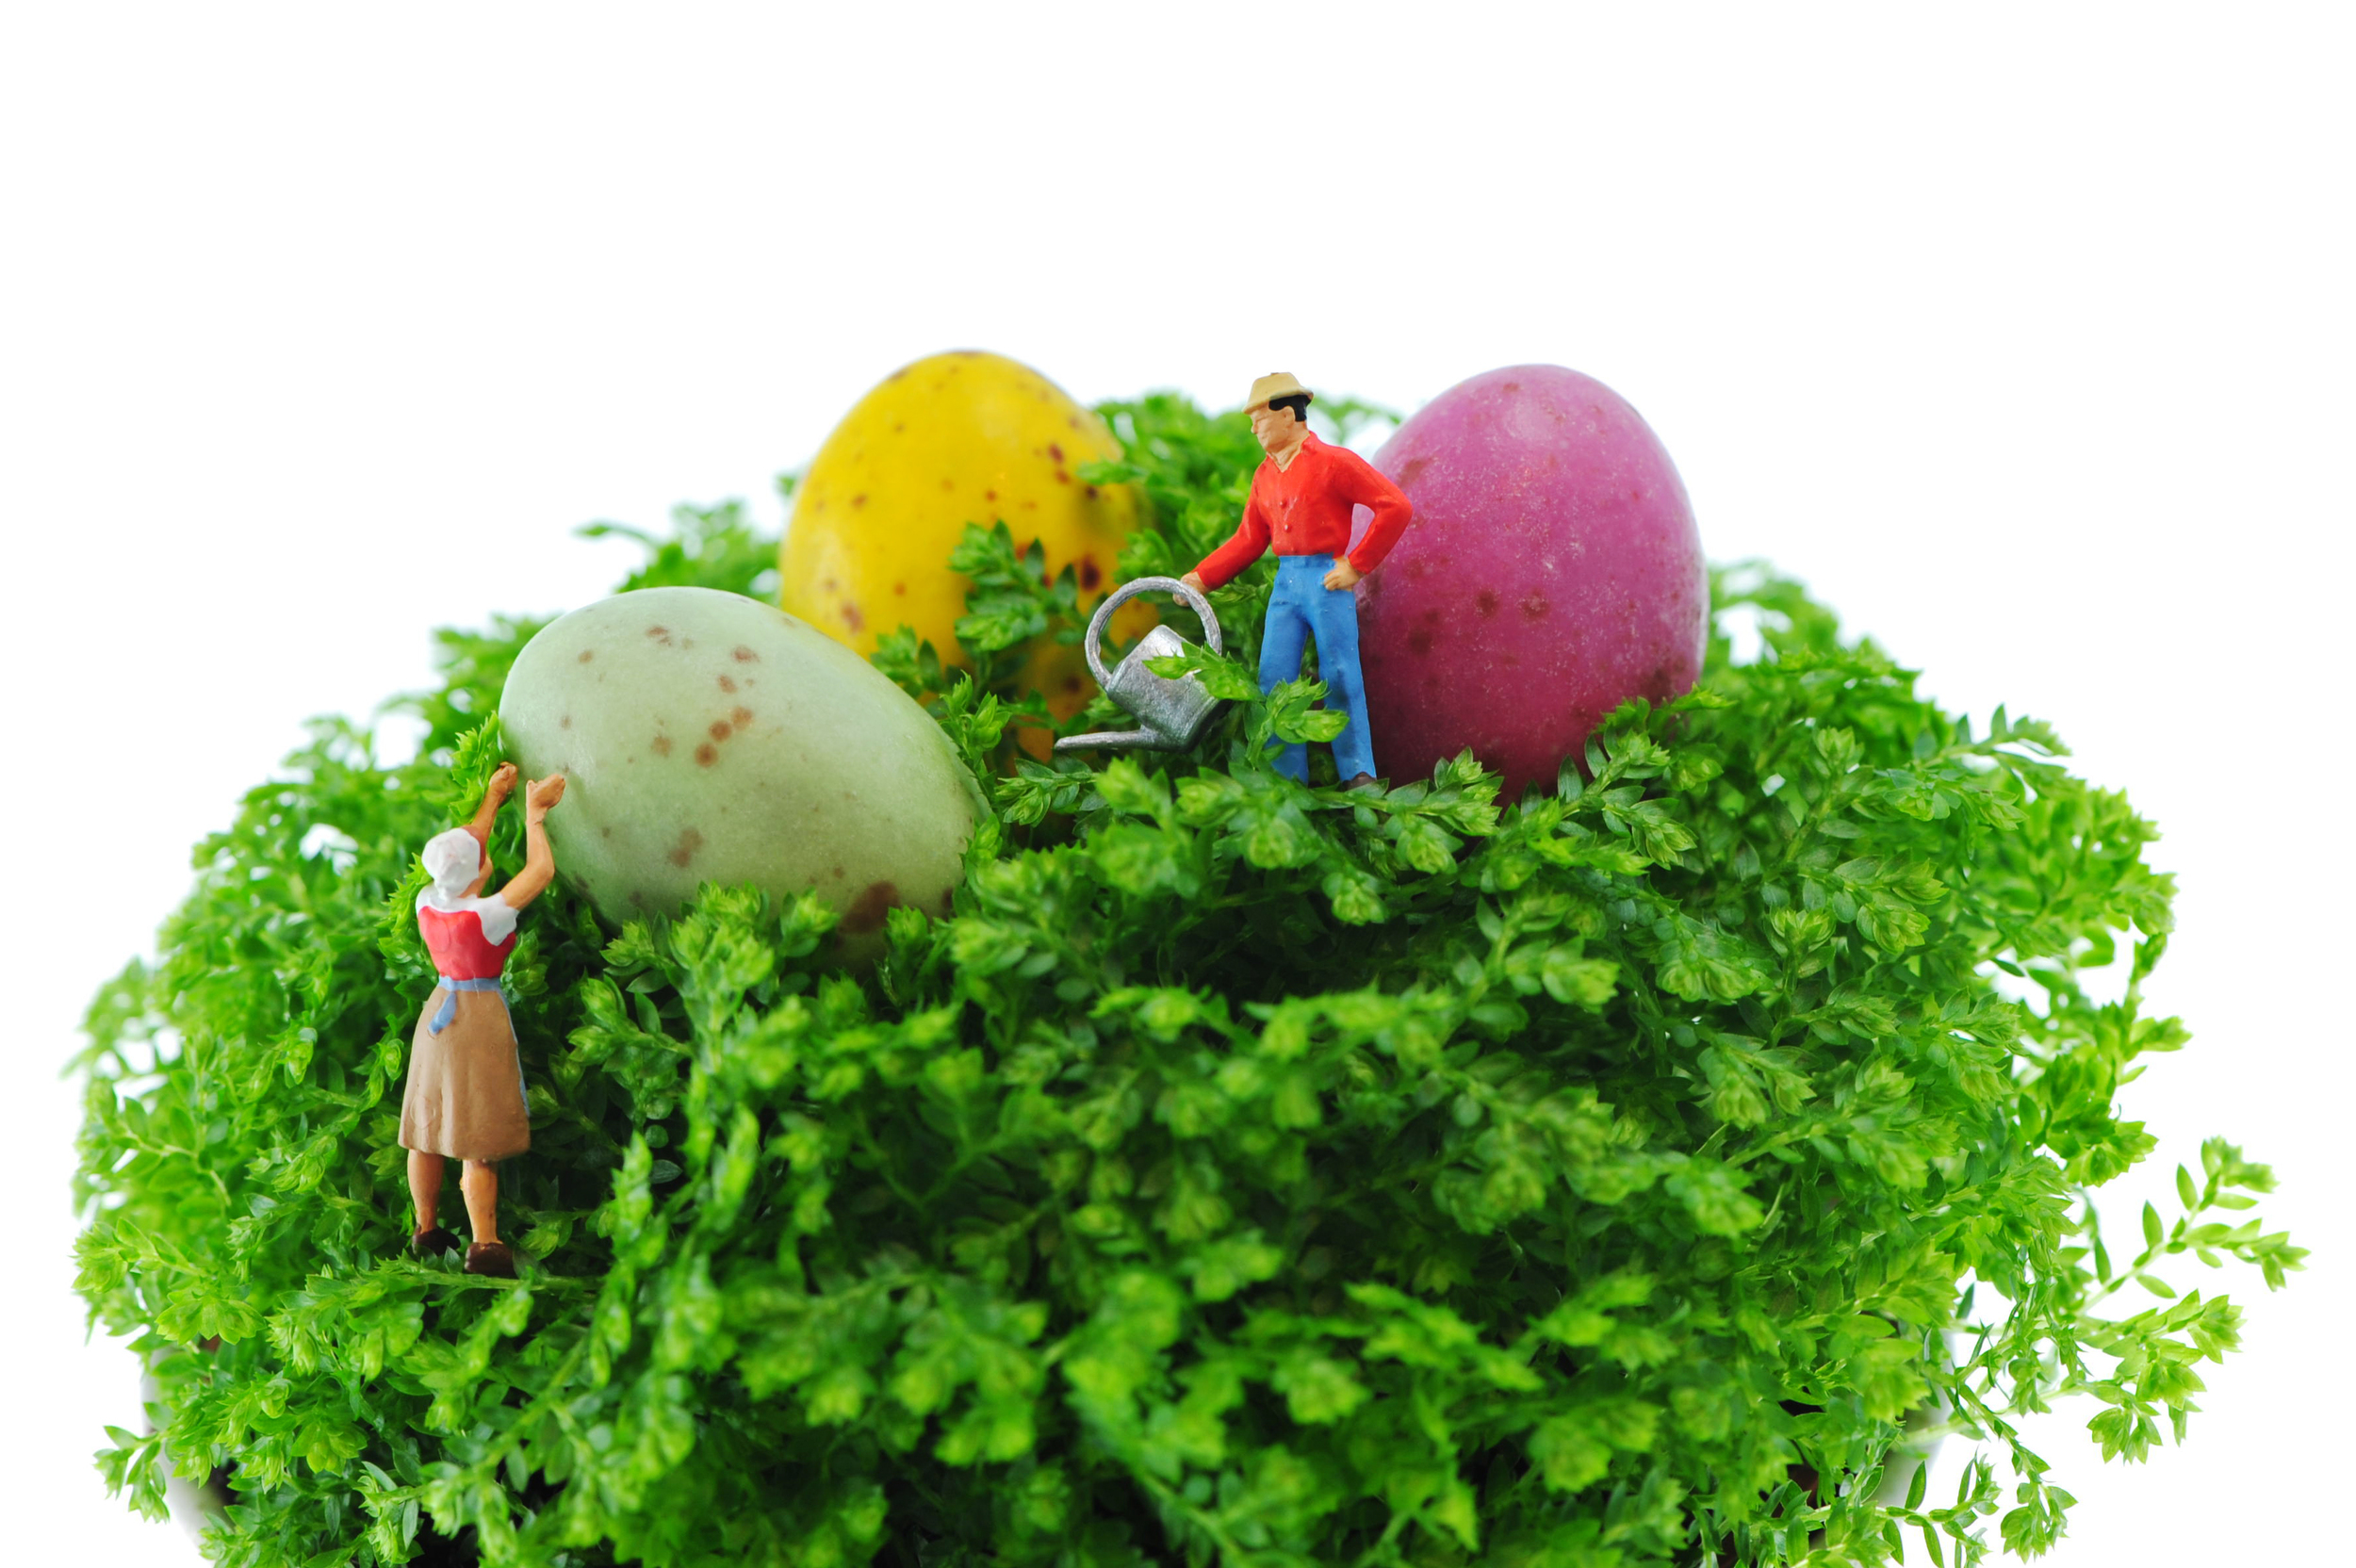 Dorothy and Bob are preparing the nest for Easter Eggs...getting ready for the treasure hunt yet?